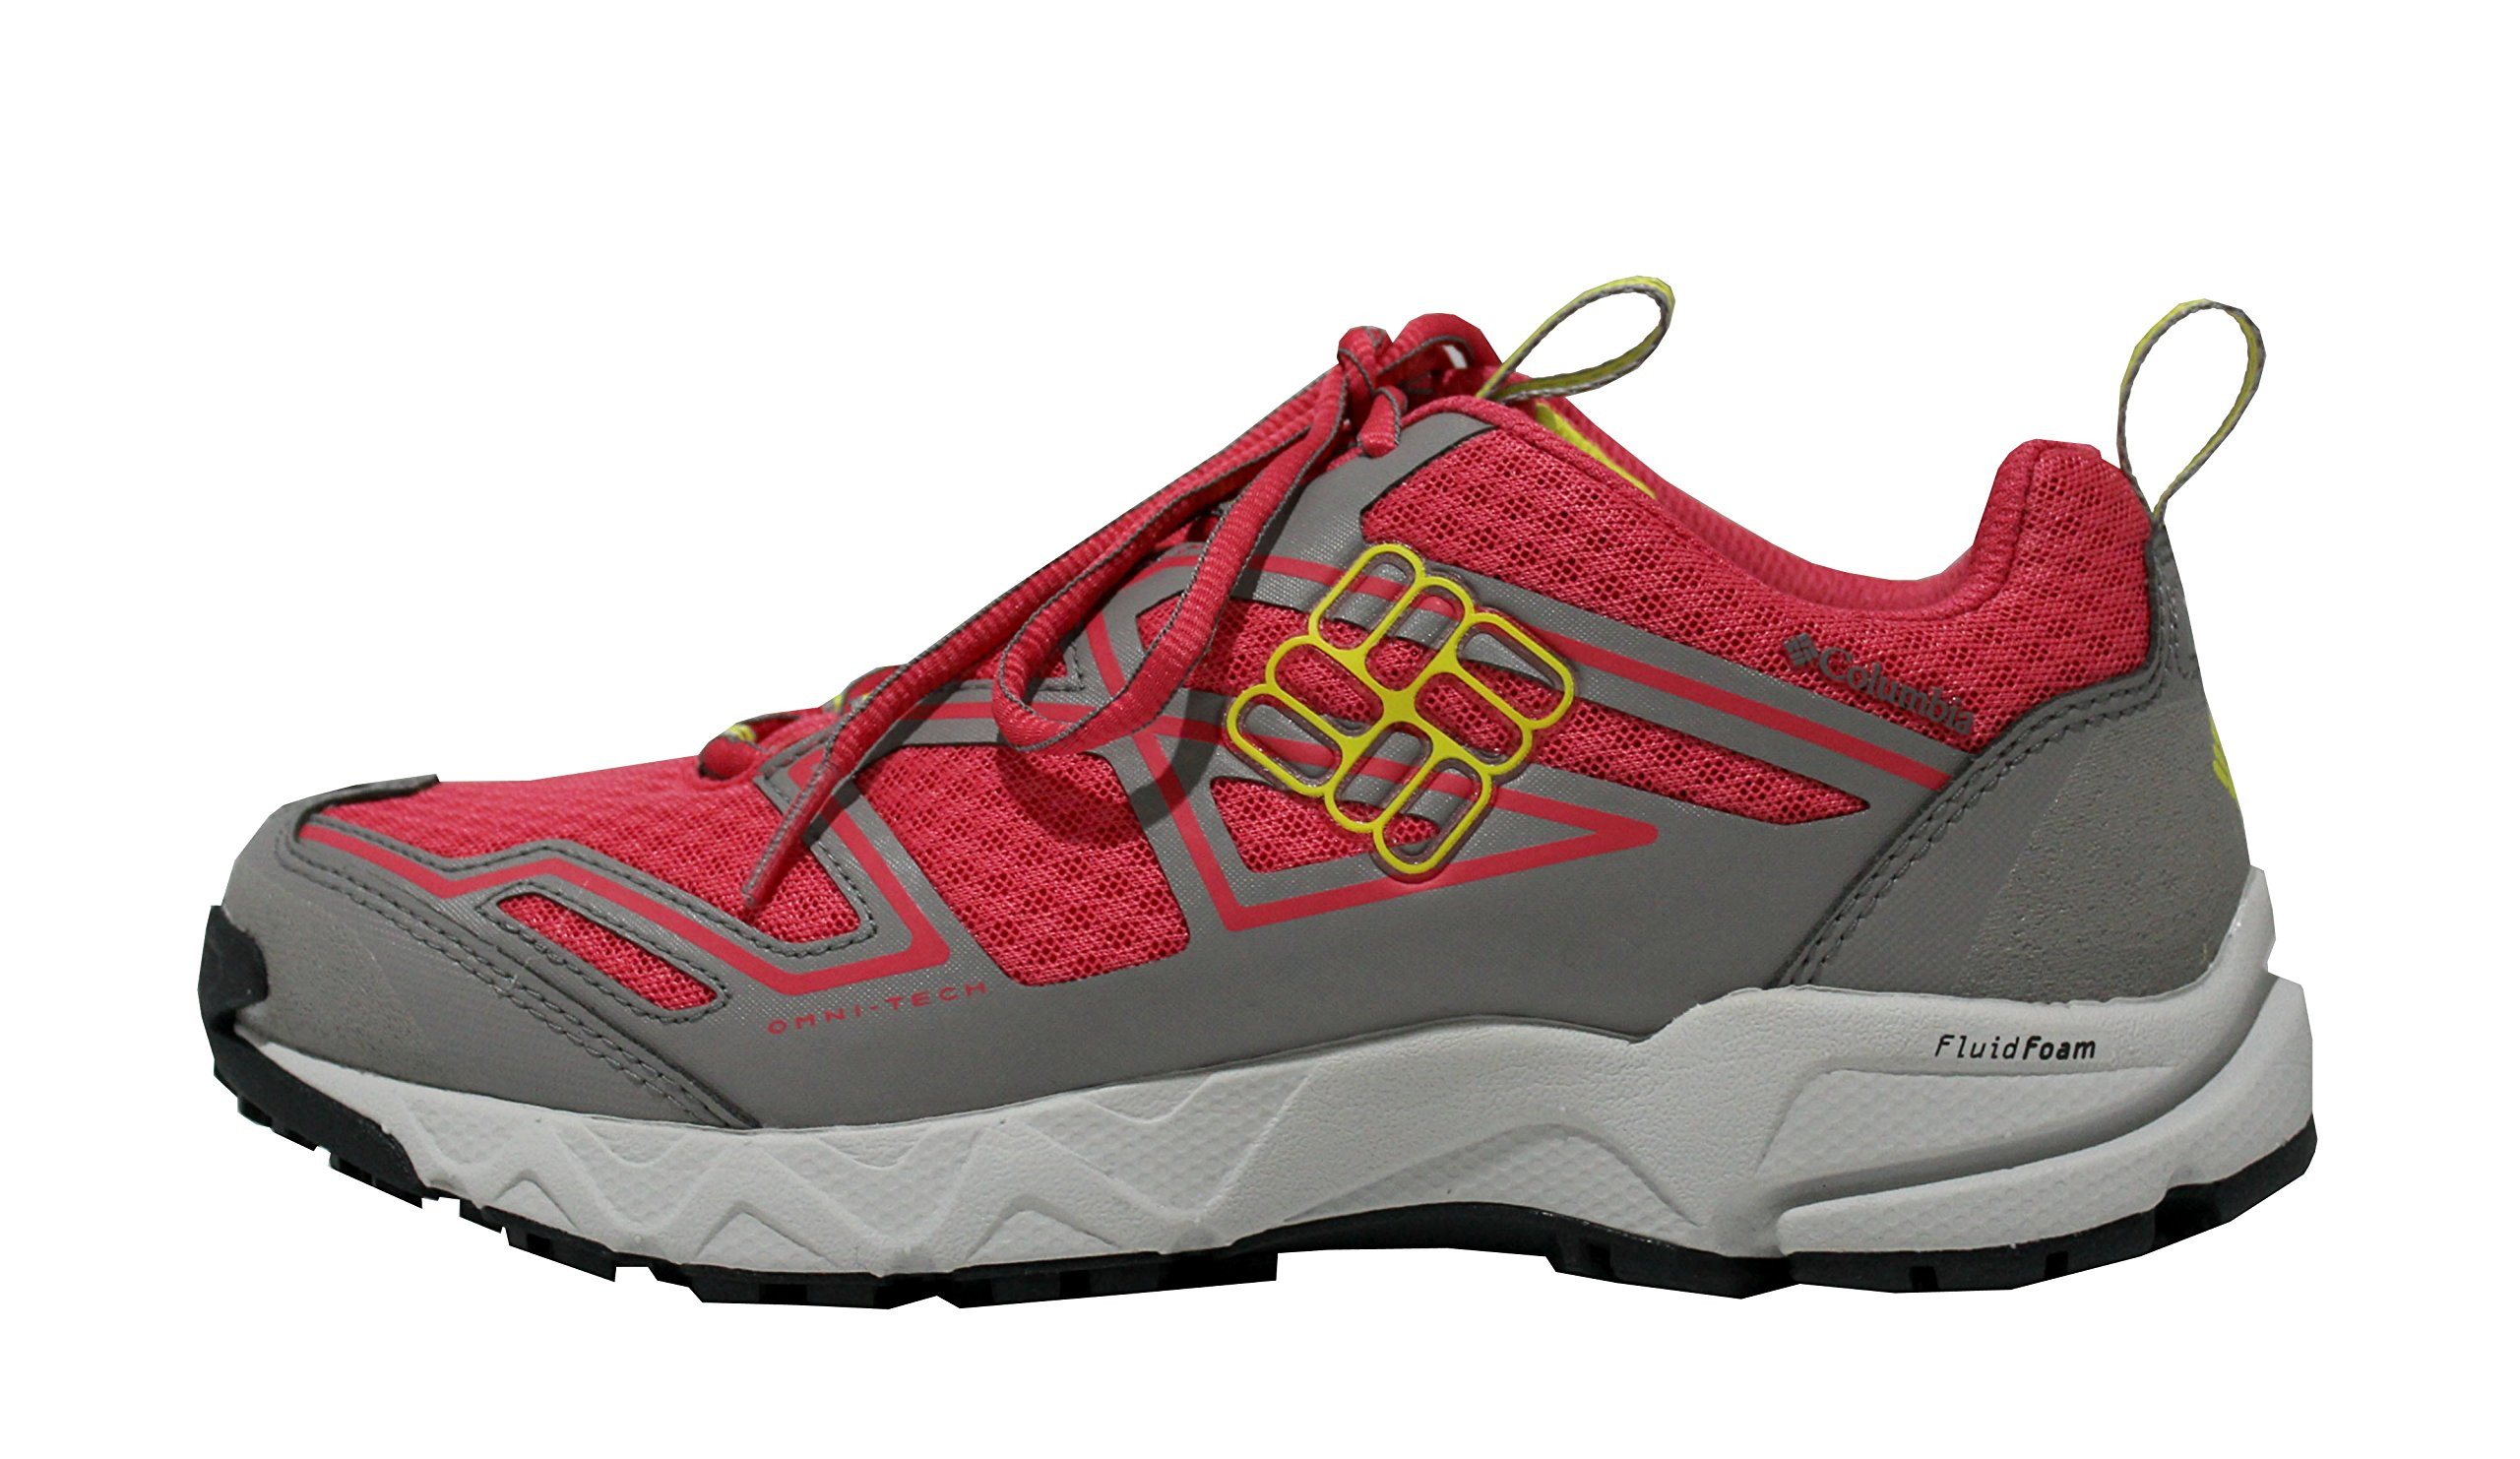 Columbia Women's Vigorous Omni Tech Waterproof Sneakers Shoes (7) by Columbia (Image #1)